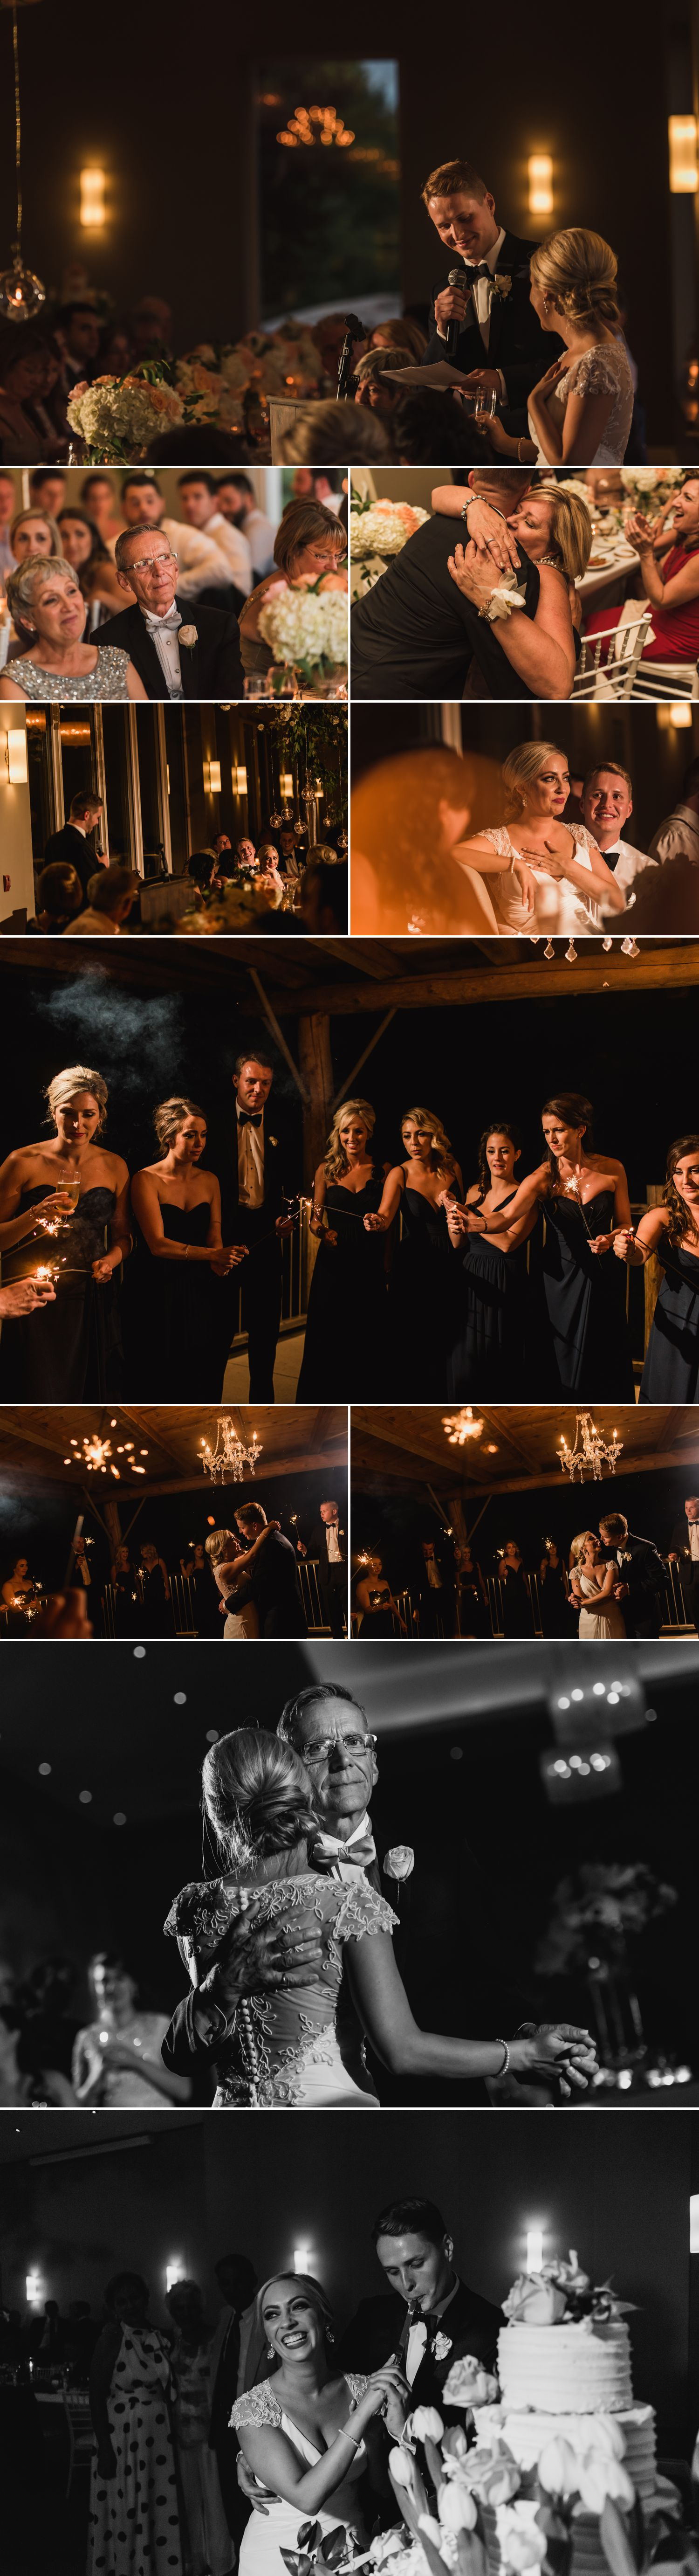 wedding-reception-moments-at-le-belvedere-wedding-in-wakefield-quebec.jpg